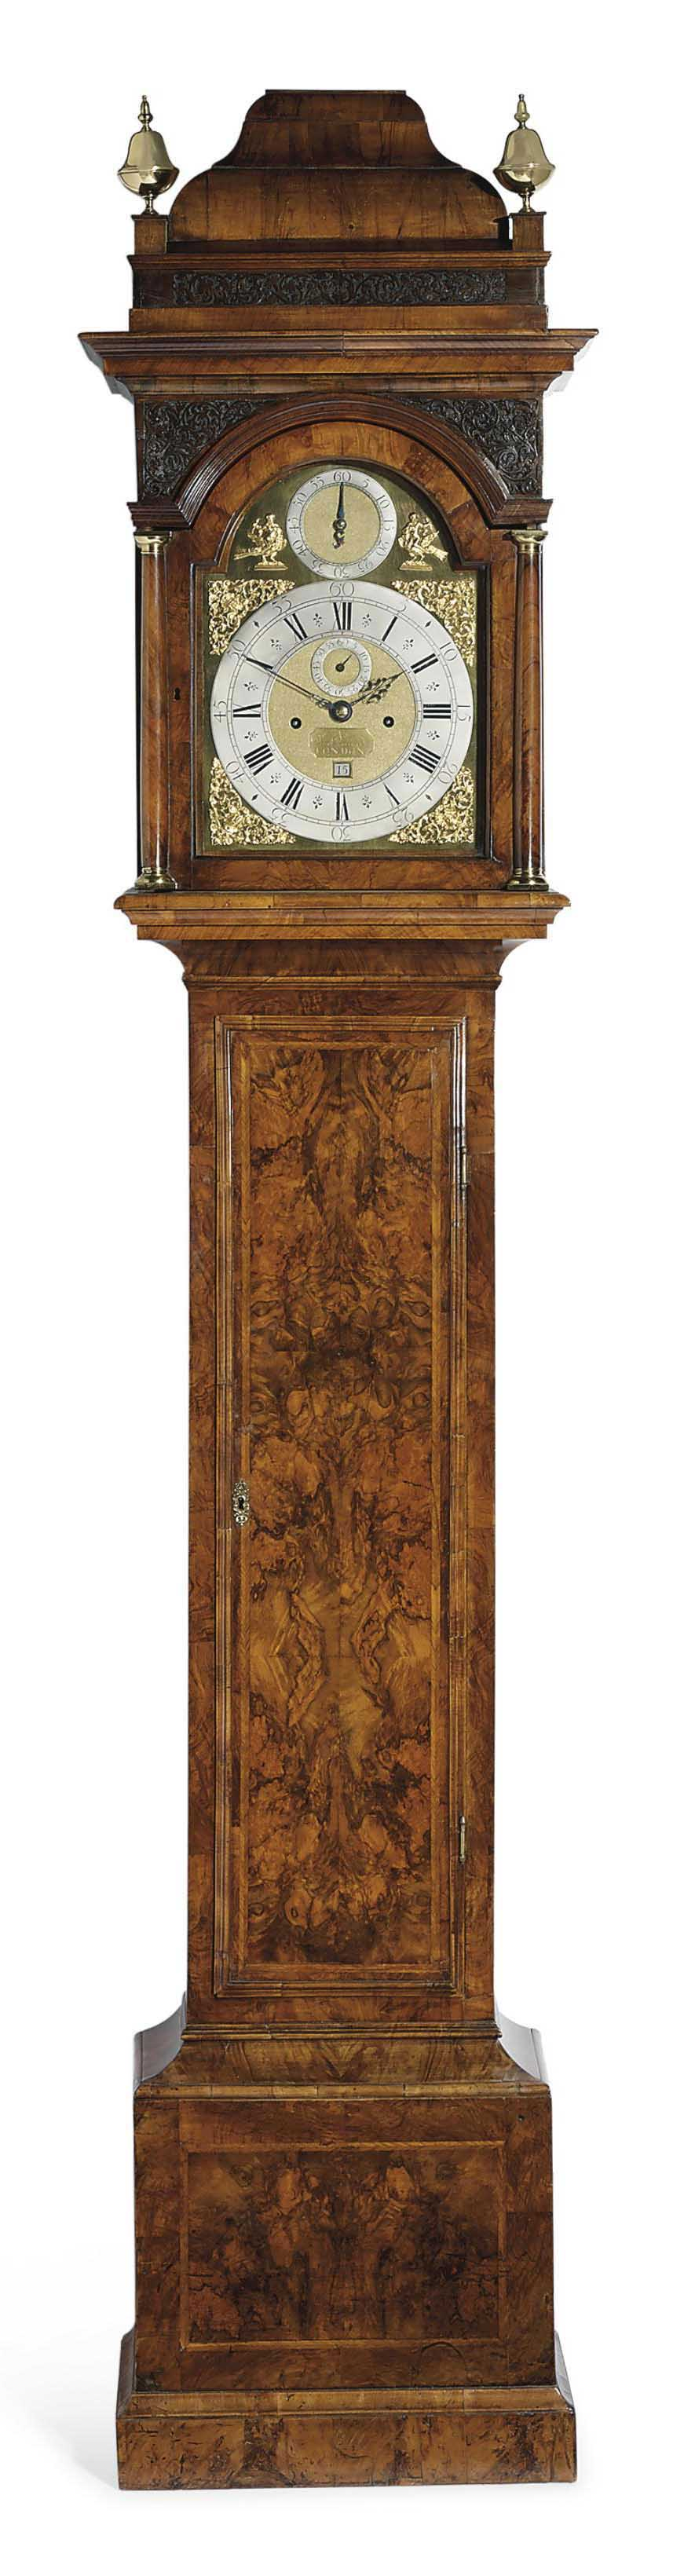 A GEORGE I WALNUT MONTH-GOING LONGCASE CLOCK